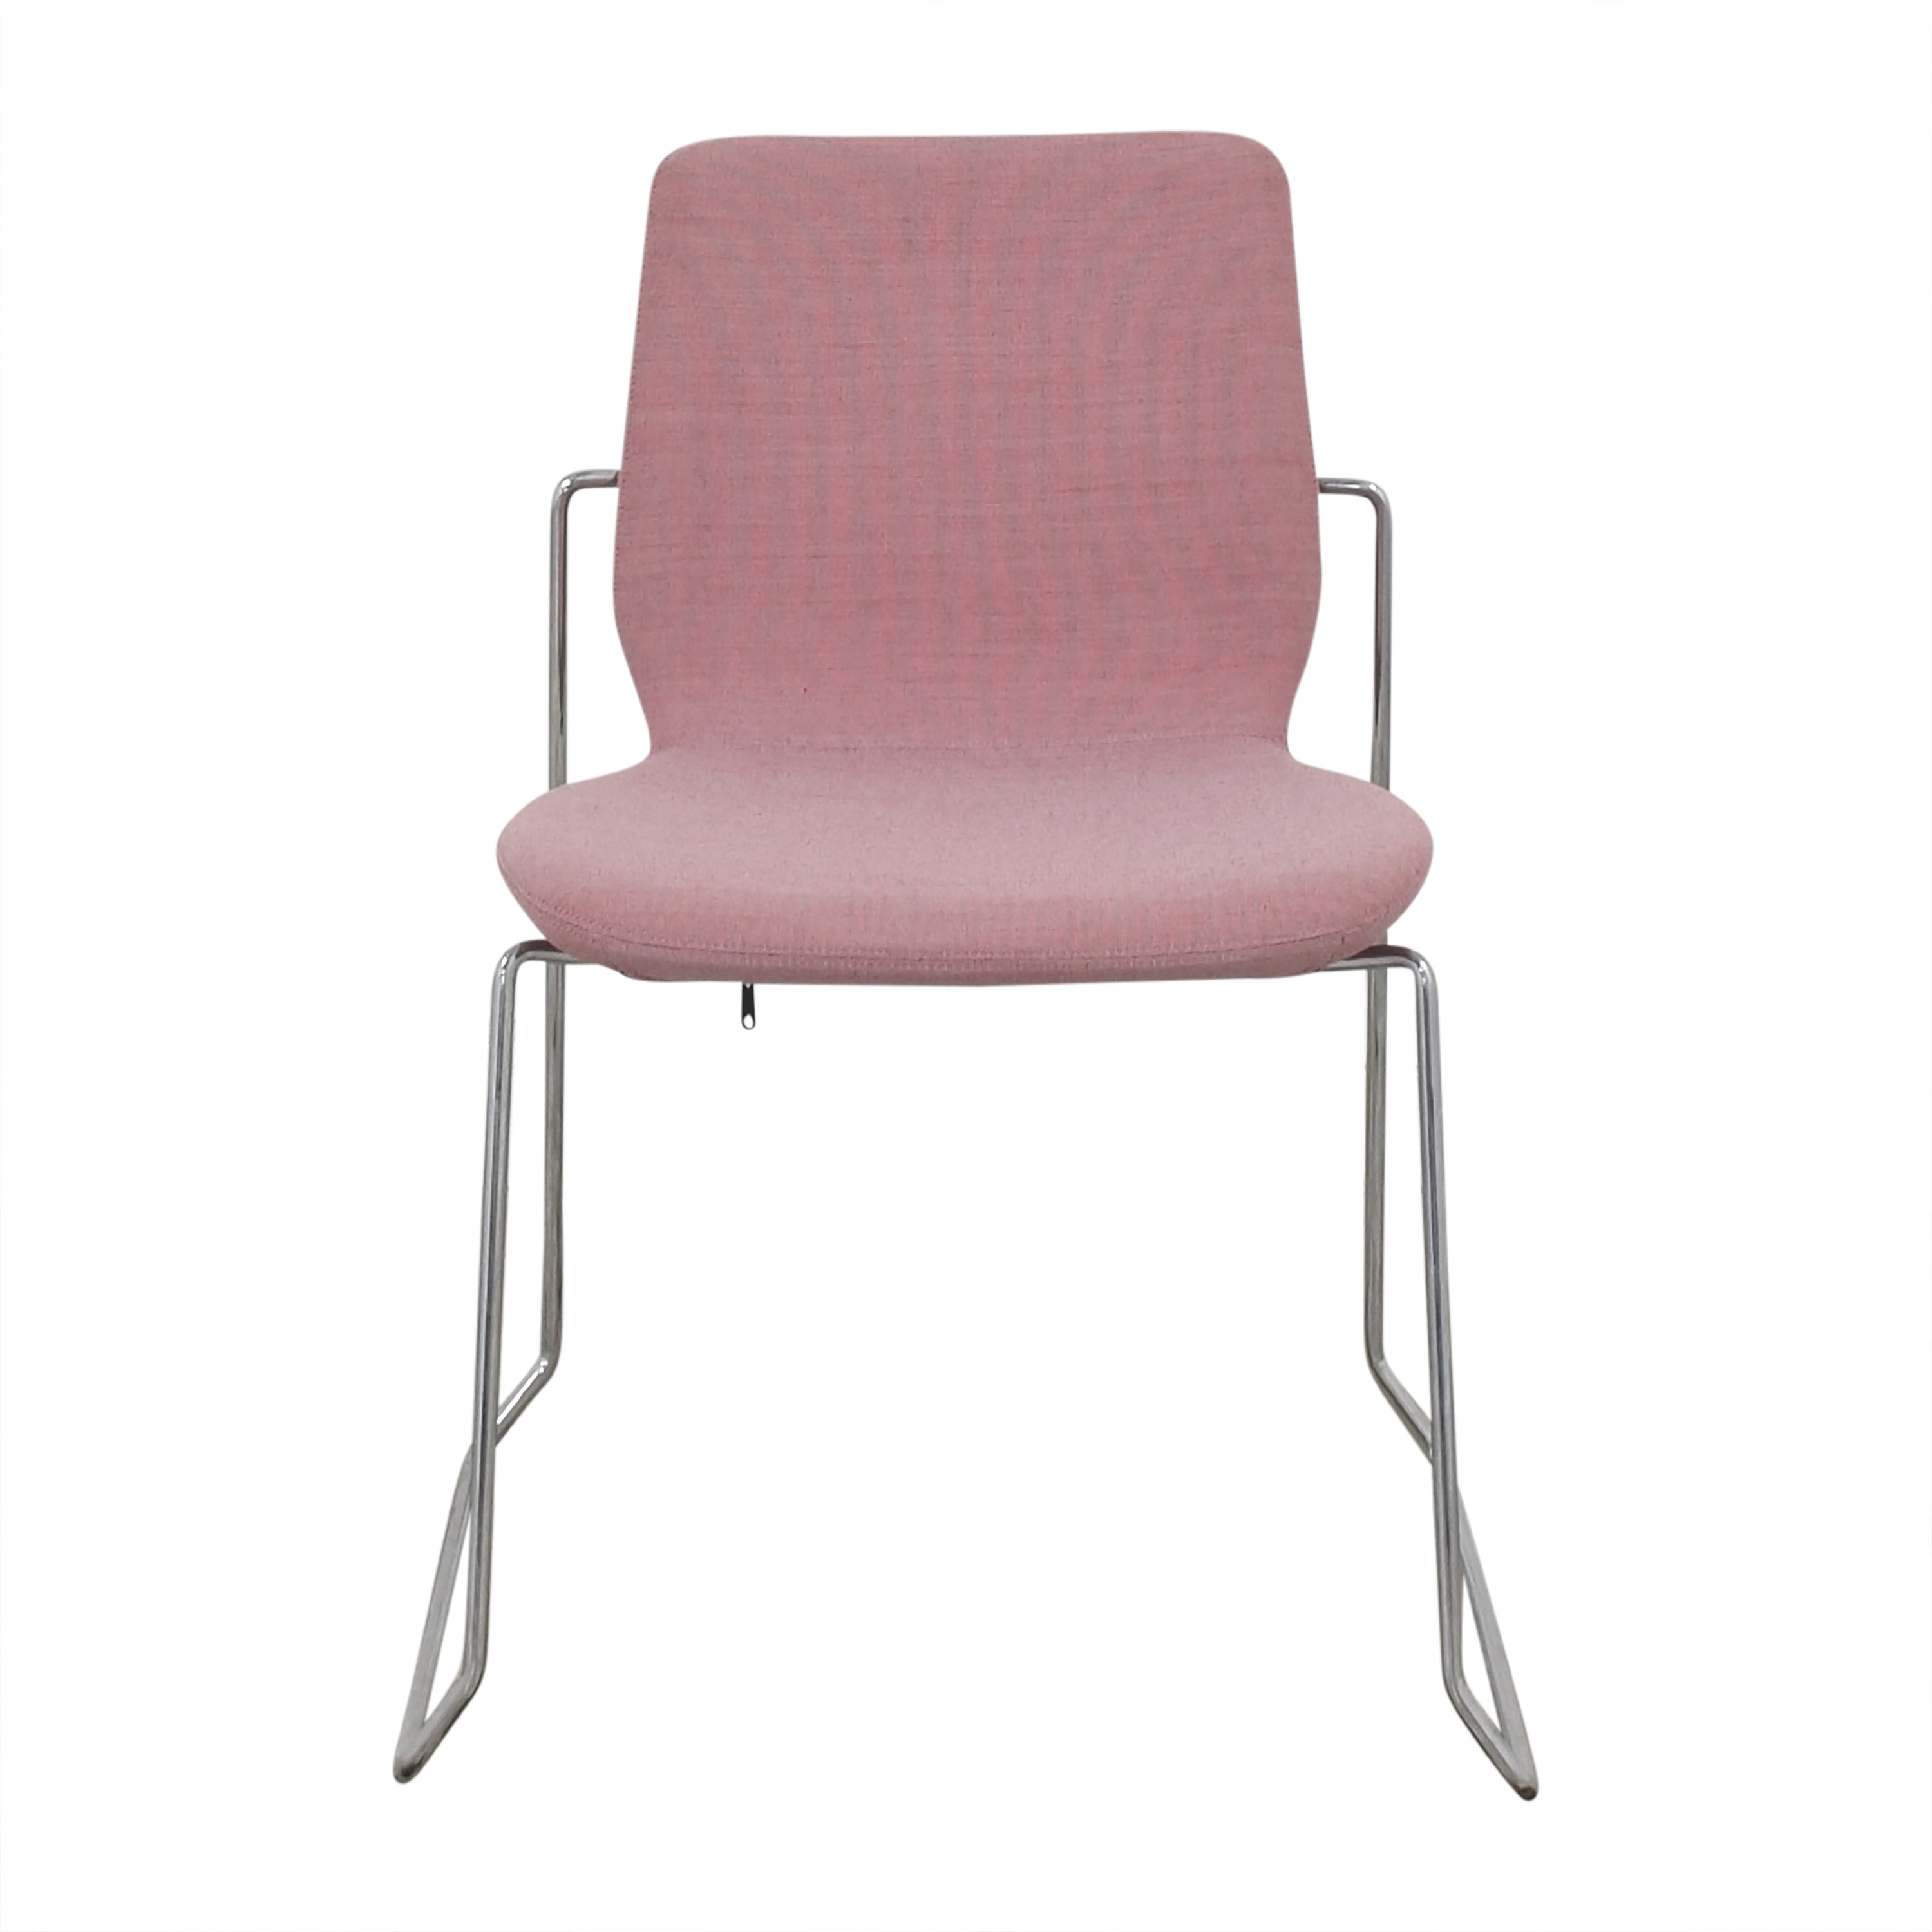 Koleksiyon Koleksiyon Asanda Armless Chair price